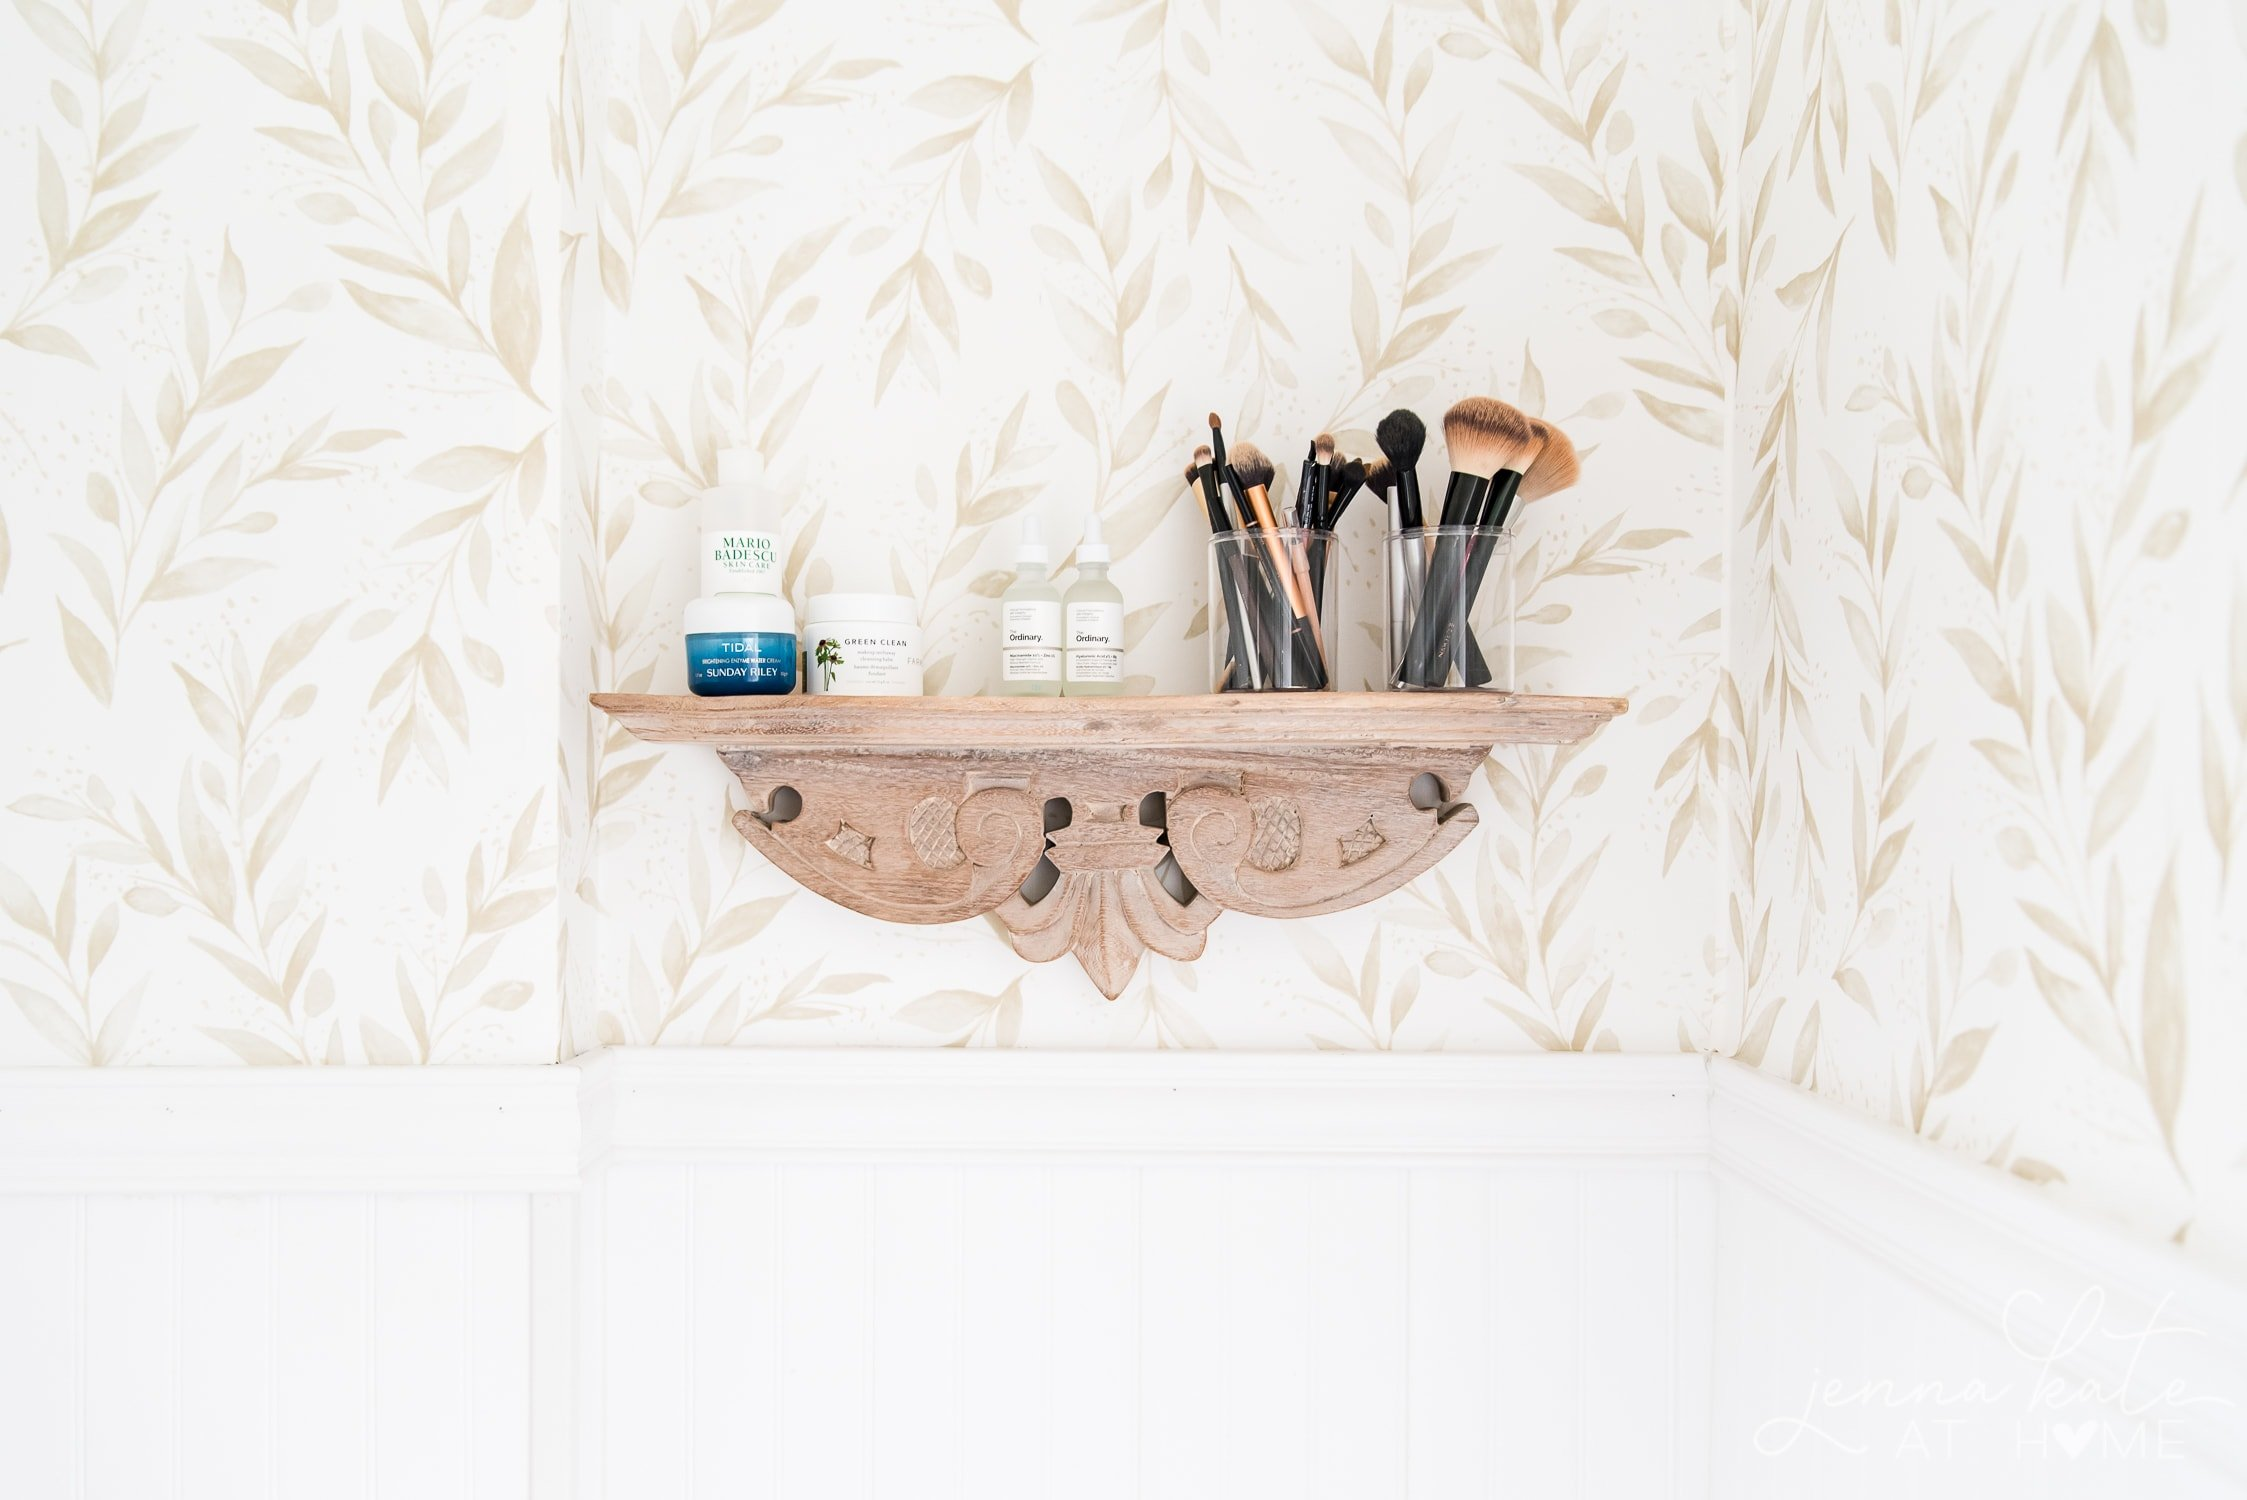 natural wood bathroom shelf with skincare products and makeup brushes